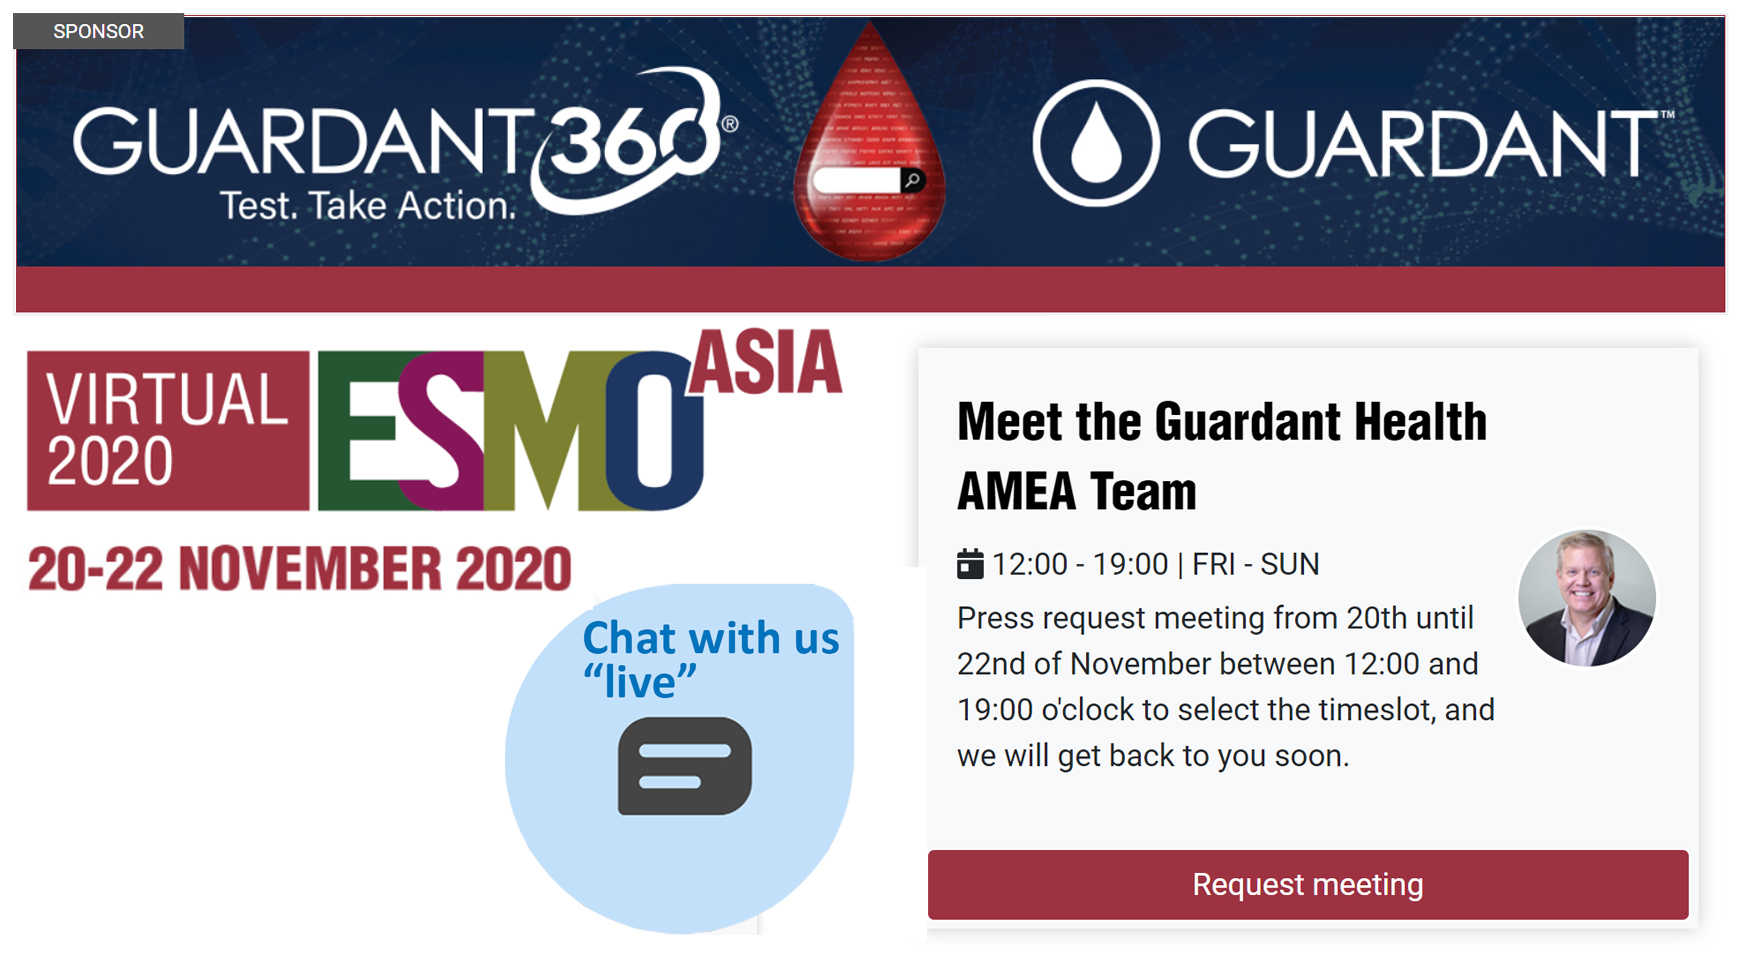 Meet the Guardant Health AMEA Team today at the ESMO Asia Virtual Booth and find out more about the Guardant360 test